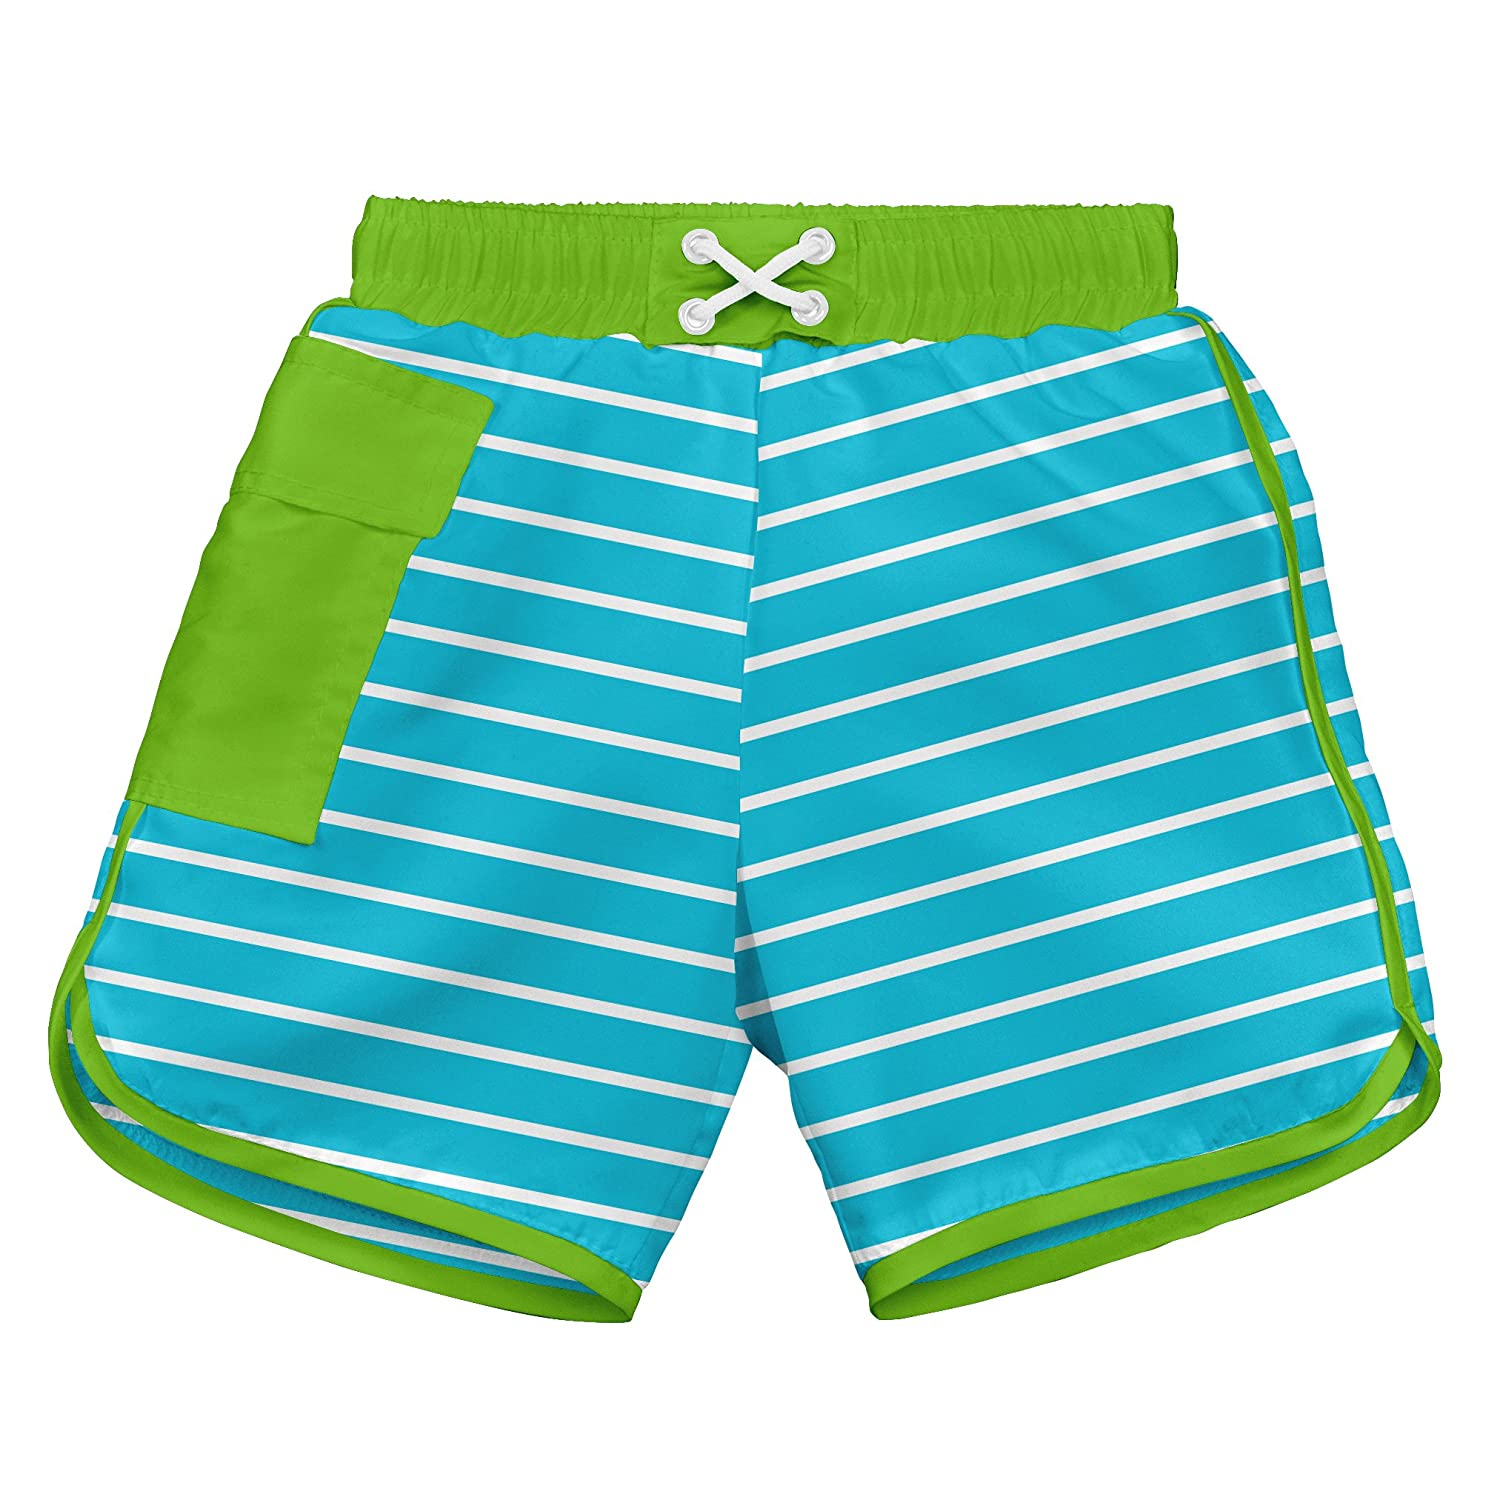 I-Play. Baby Boys\' Pocket Board Shorts with Built-In Reusable Absorbent Swim Diaper i play Children' s Apparel 722190